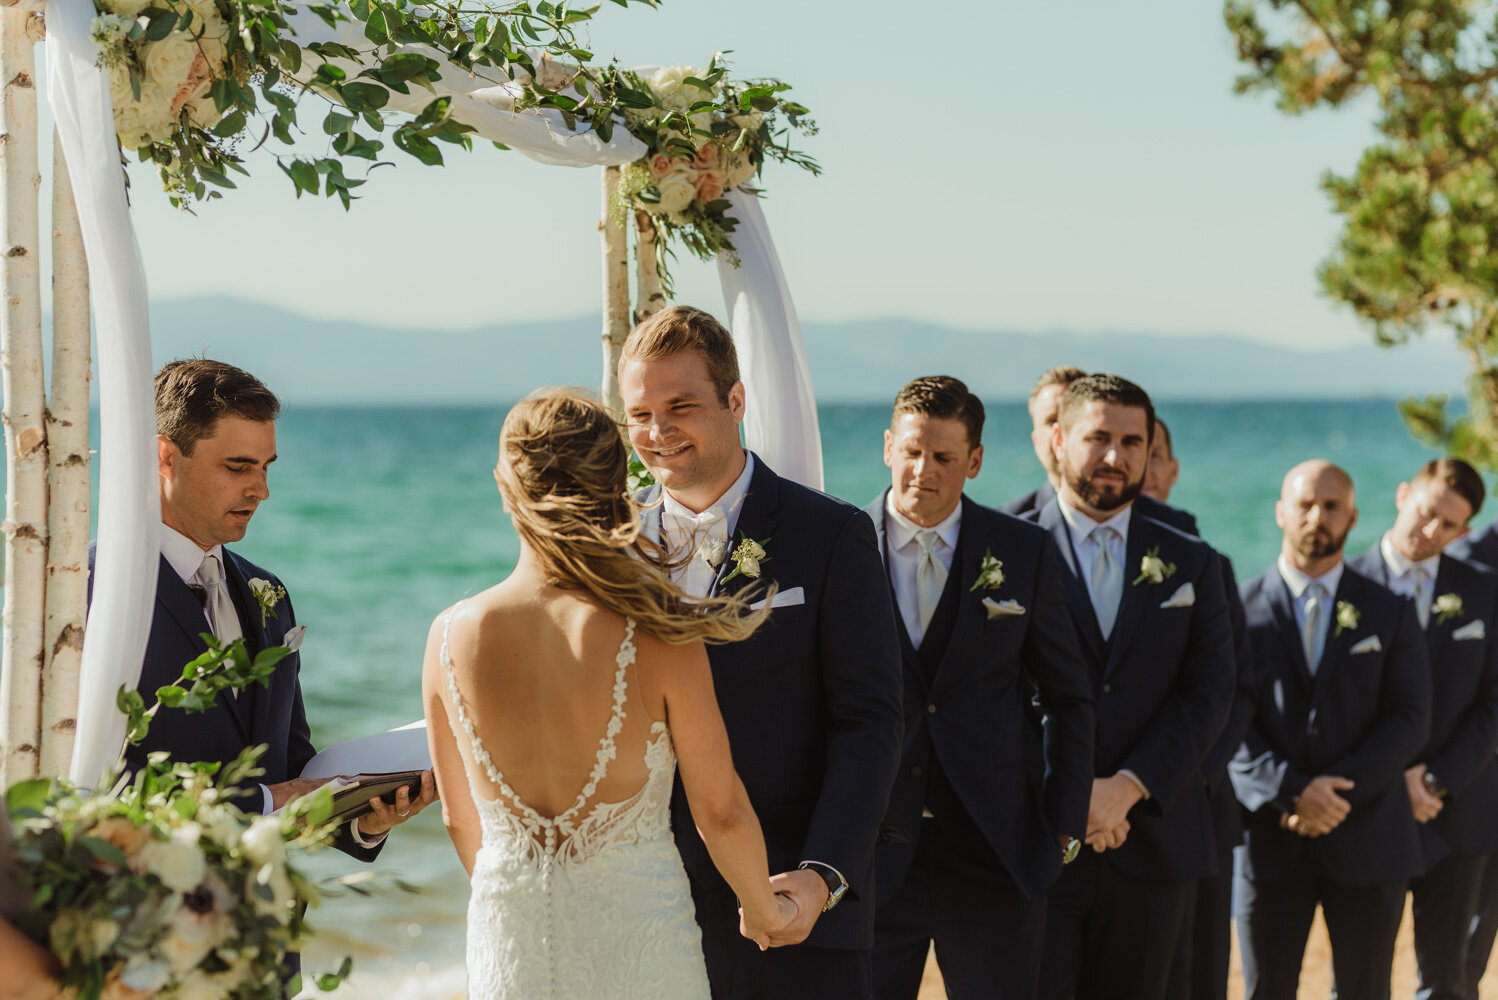 Edgewood Tahoe Wedding, photo of groom during the ceremony